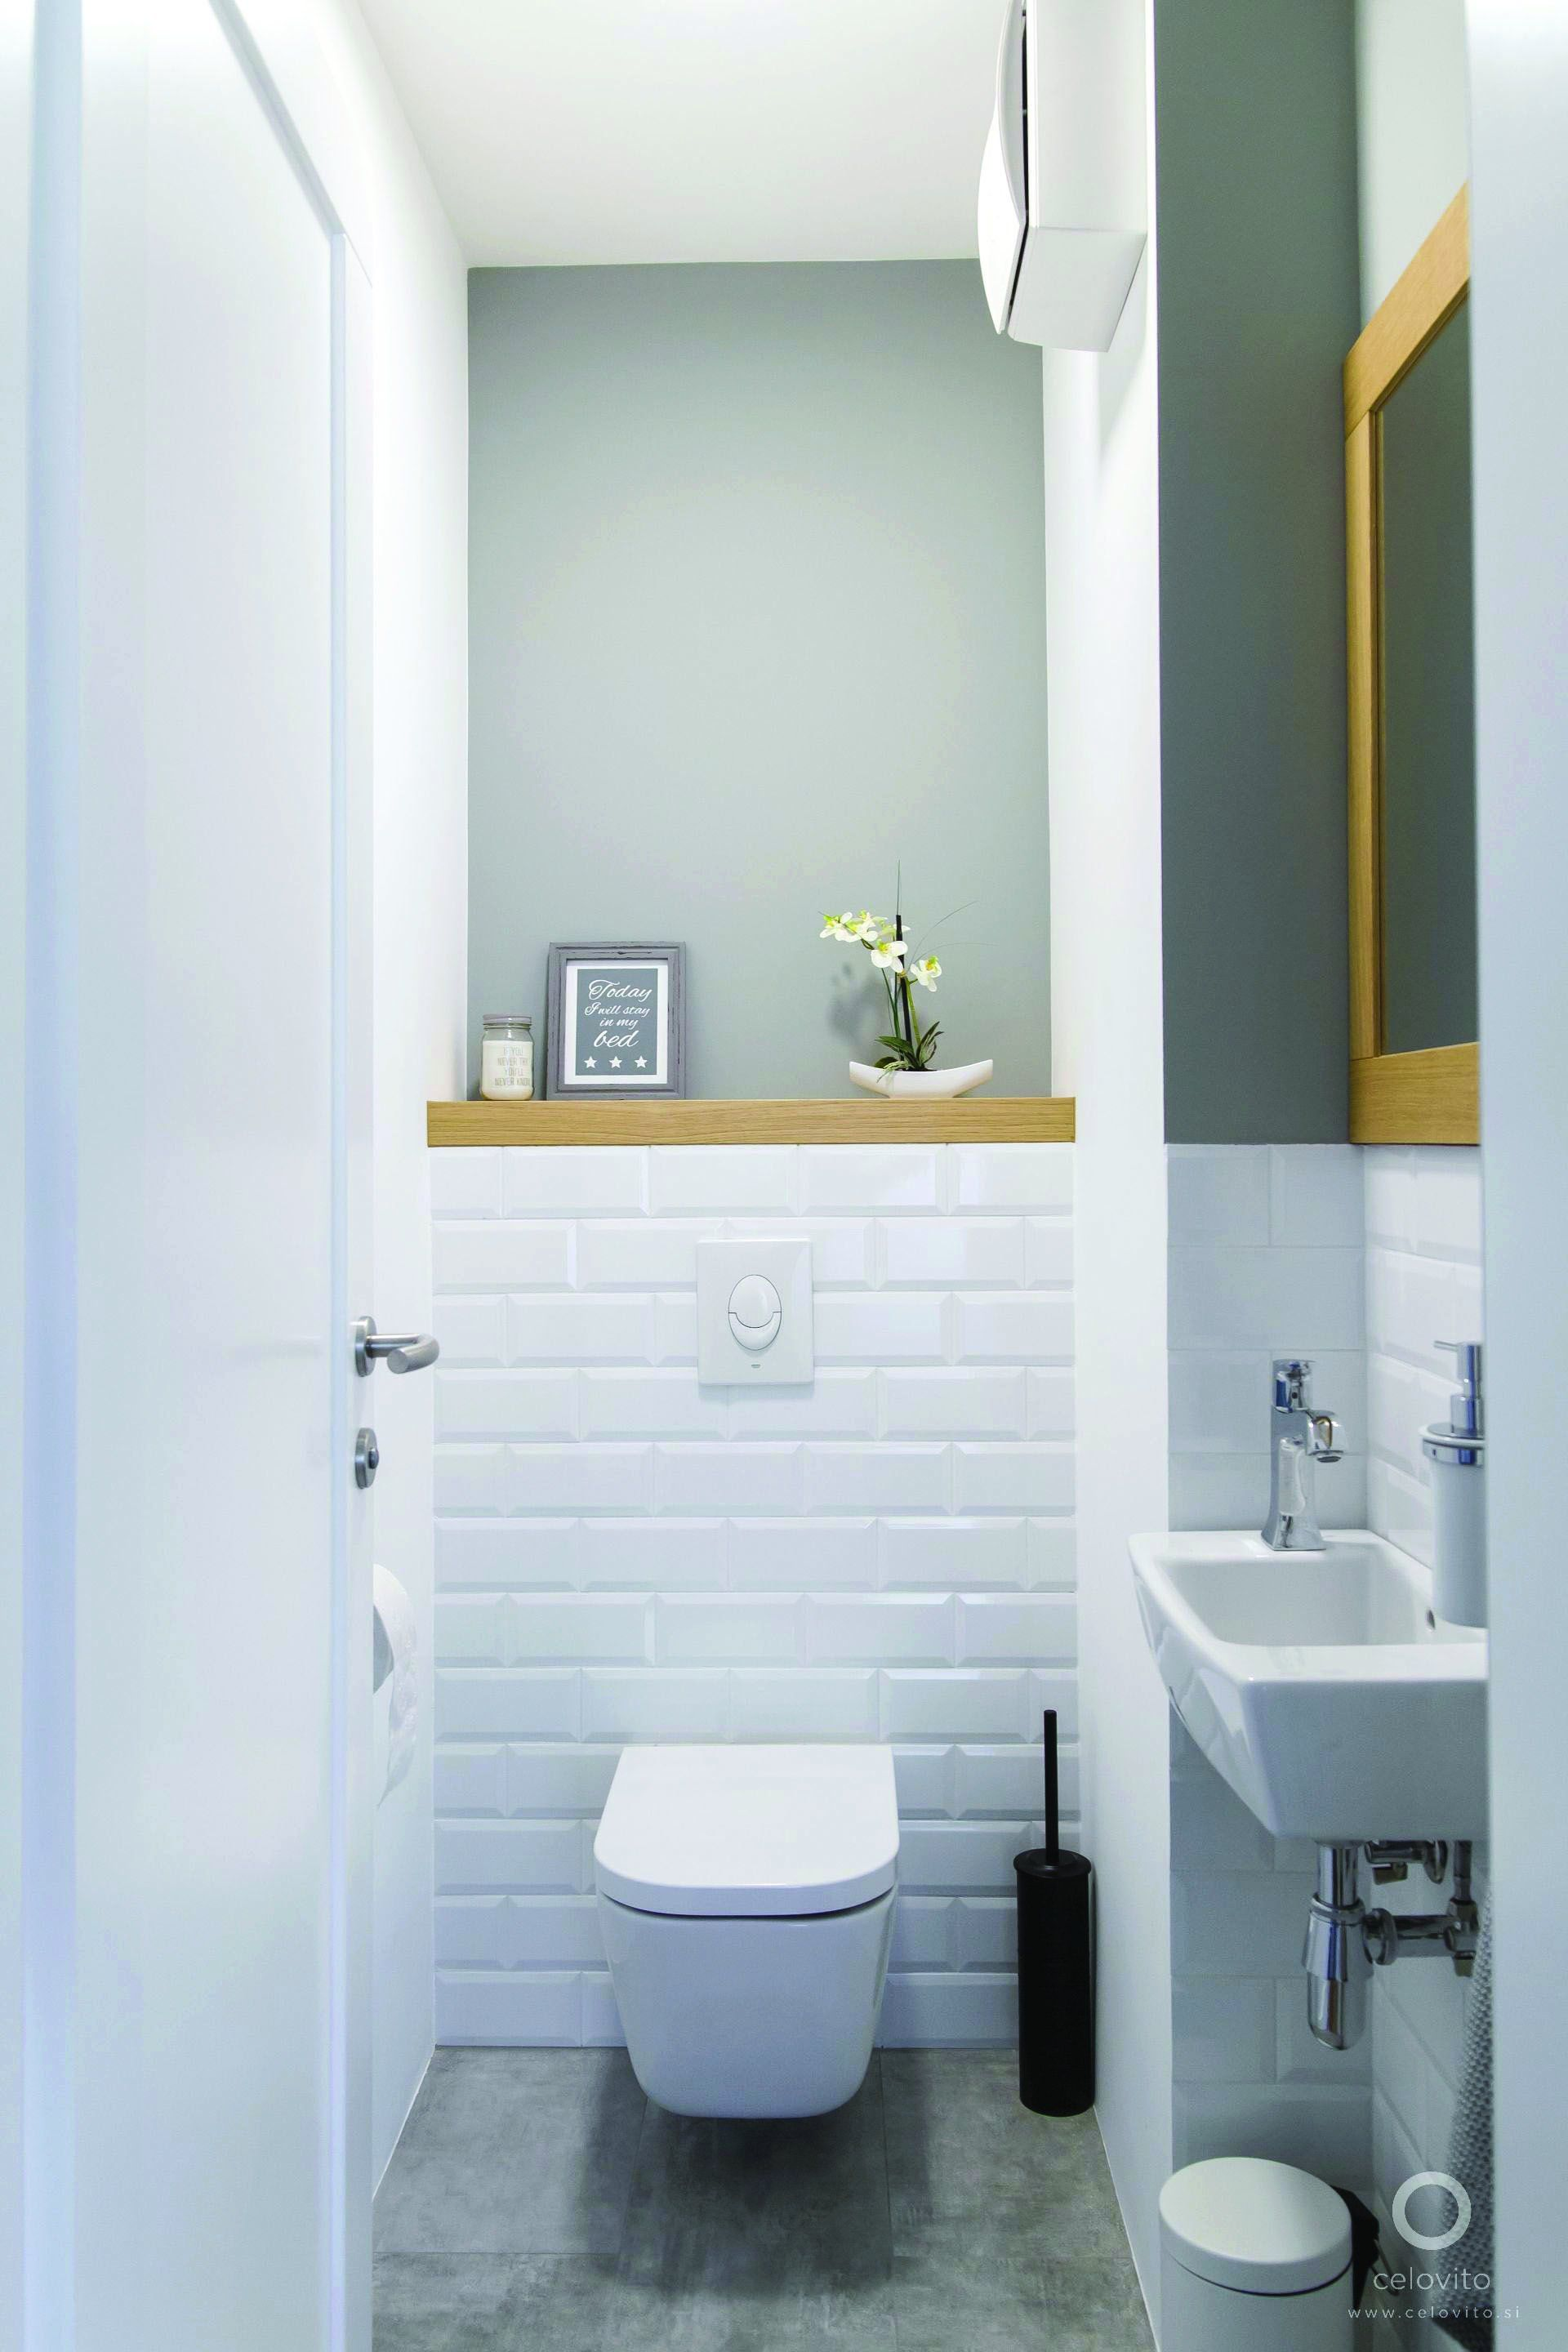 Cloakroom Ideas That Make The Most Of Your Small Space And 1000 In 2020 Small Toilet Room Small Bathroom Small Downstairs Toilet